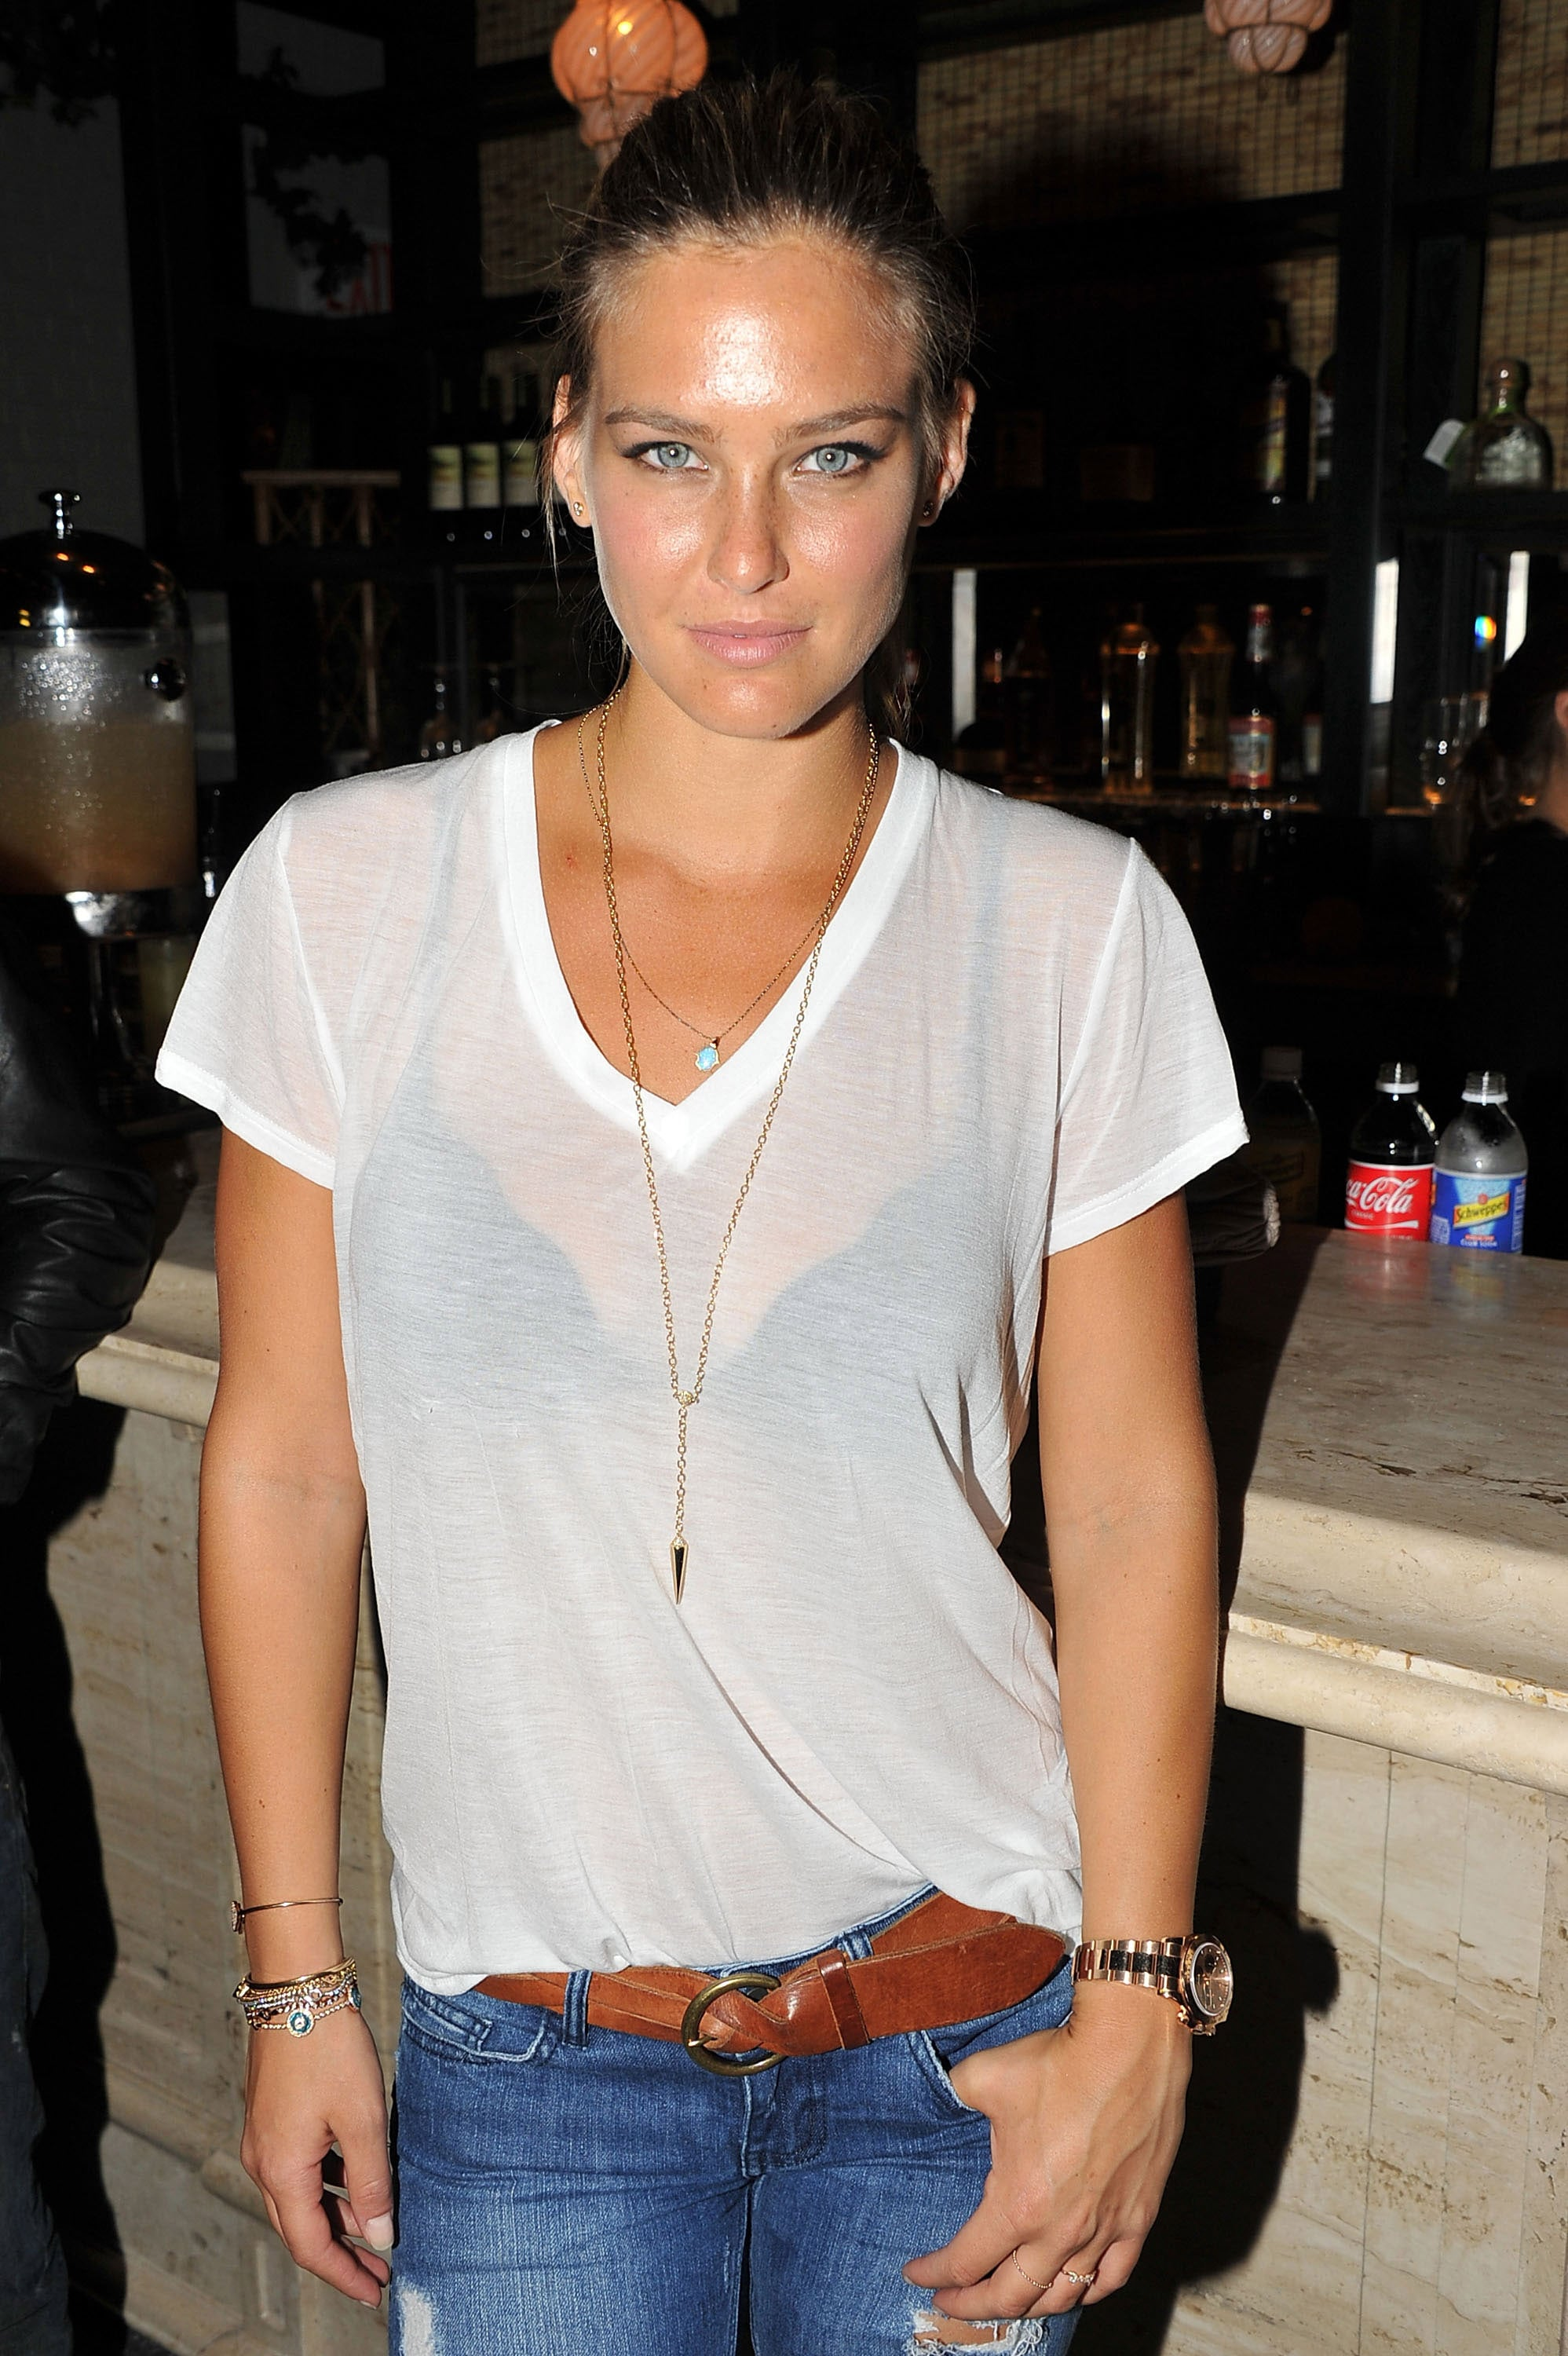 Bar Refaeli at Tommy Hilfiger's dinner.